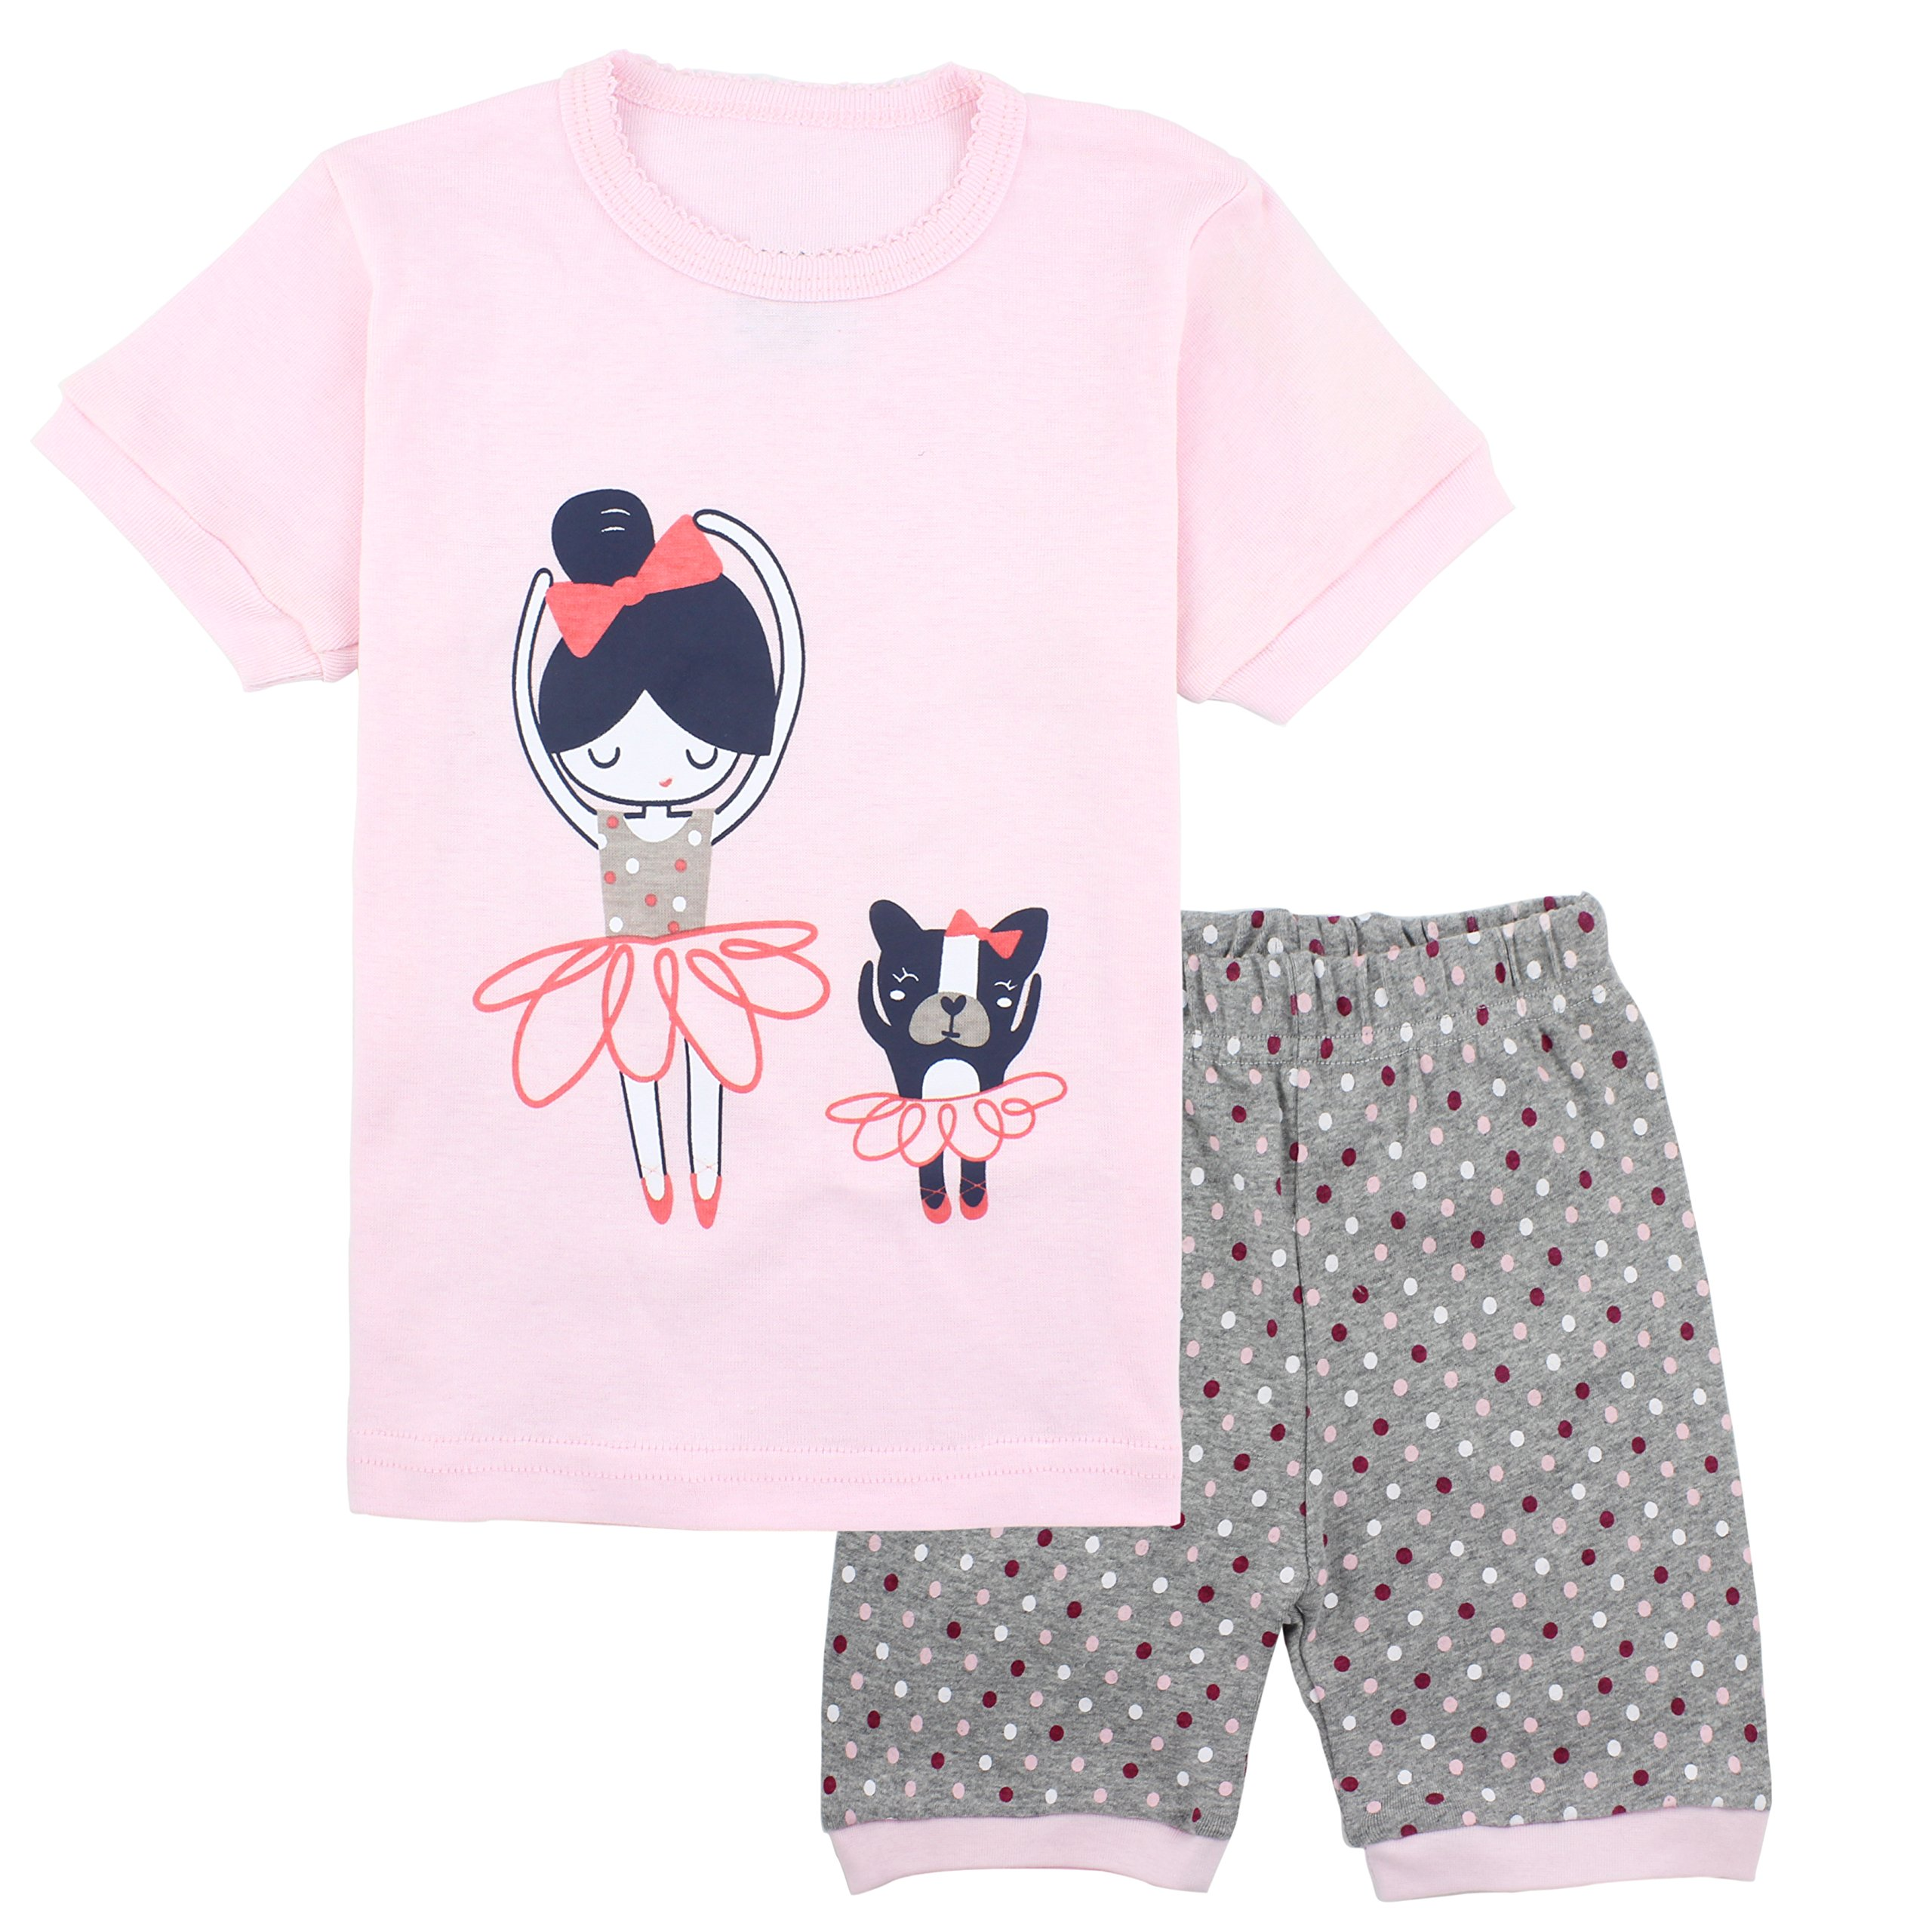 Pajamas for Girls Toddler Shorts Summer Clothes Pink Puppy Sleepwear Children PJS Set Size 5